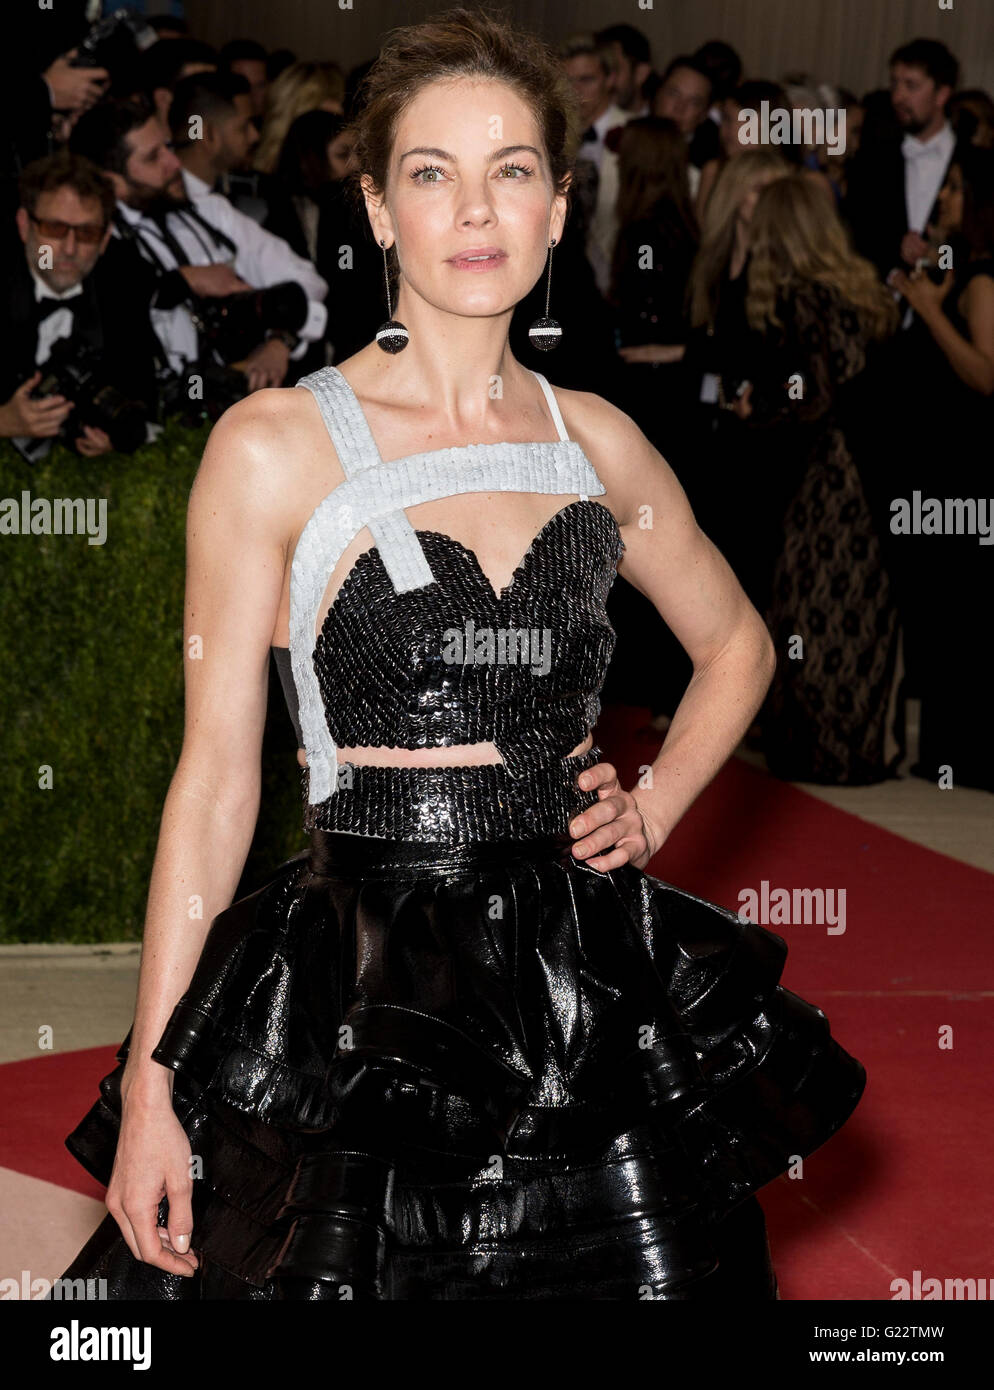 New York City, USA - May 2, 2016: Actress Michelle Monaghan attends the 2016 Met Gala - Stock Image